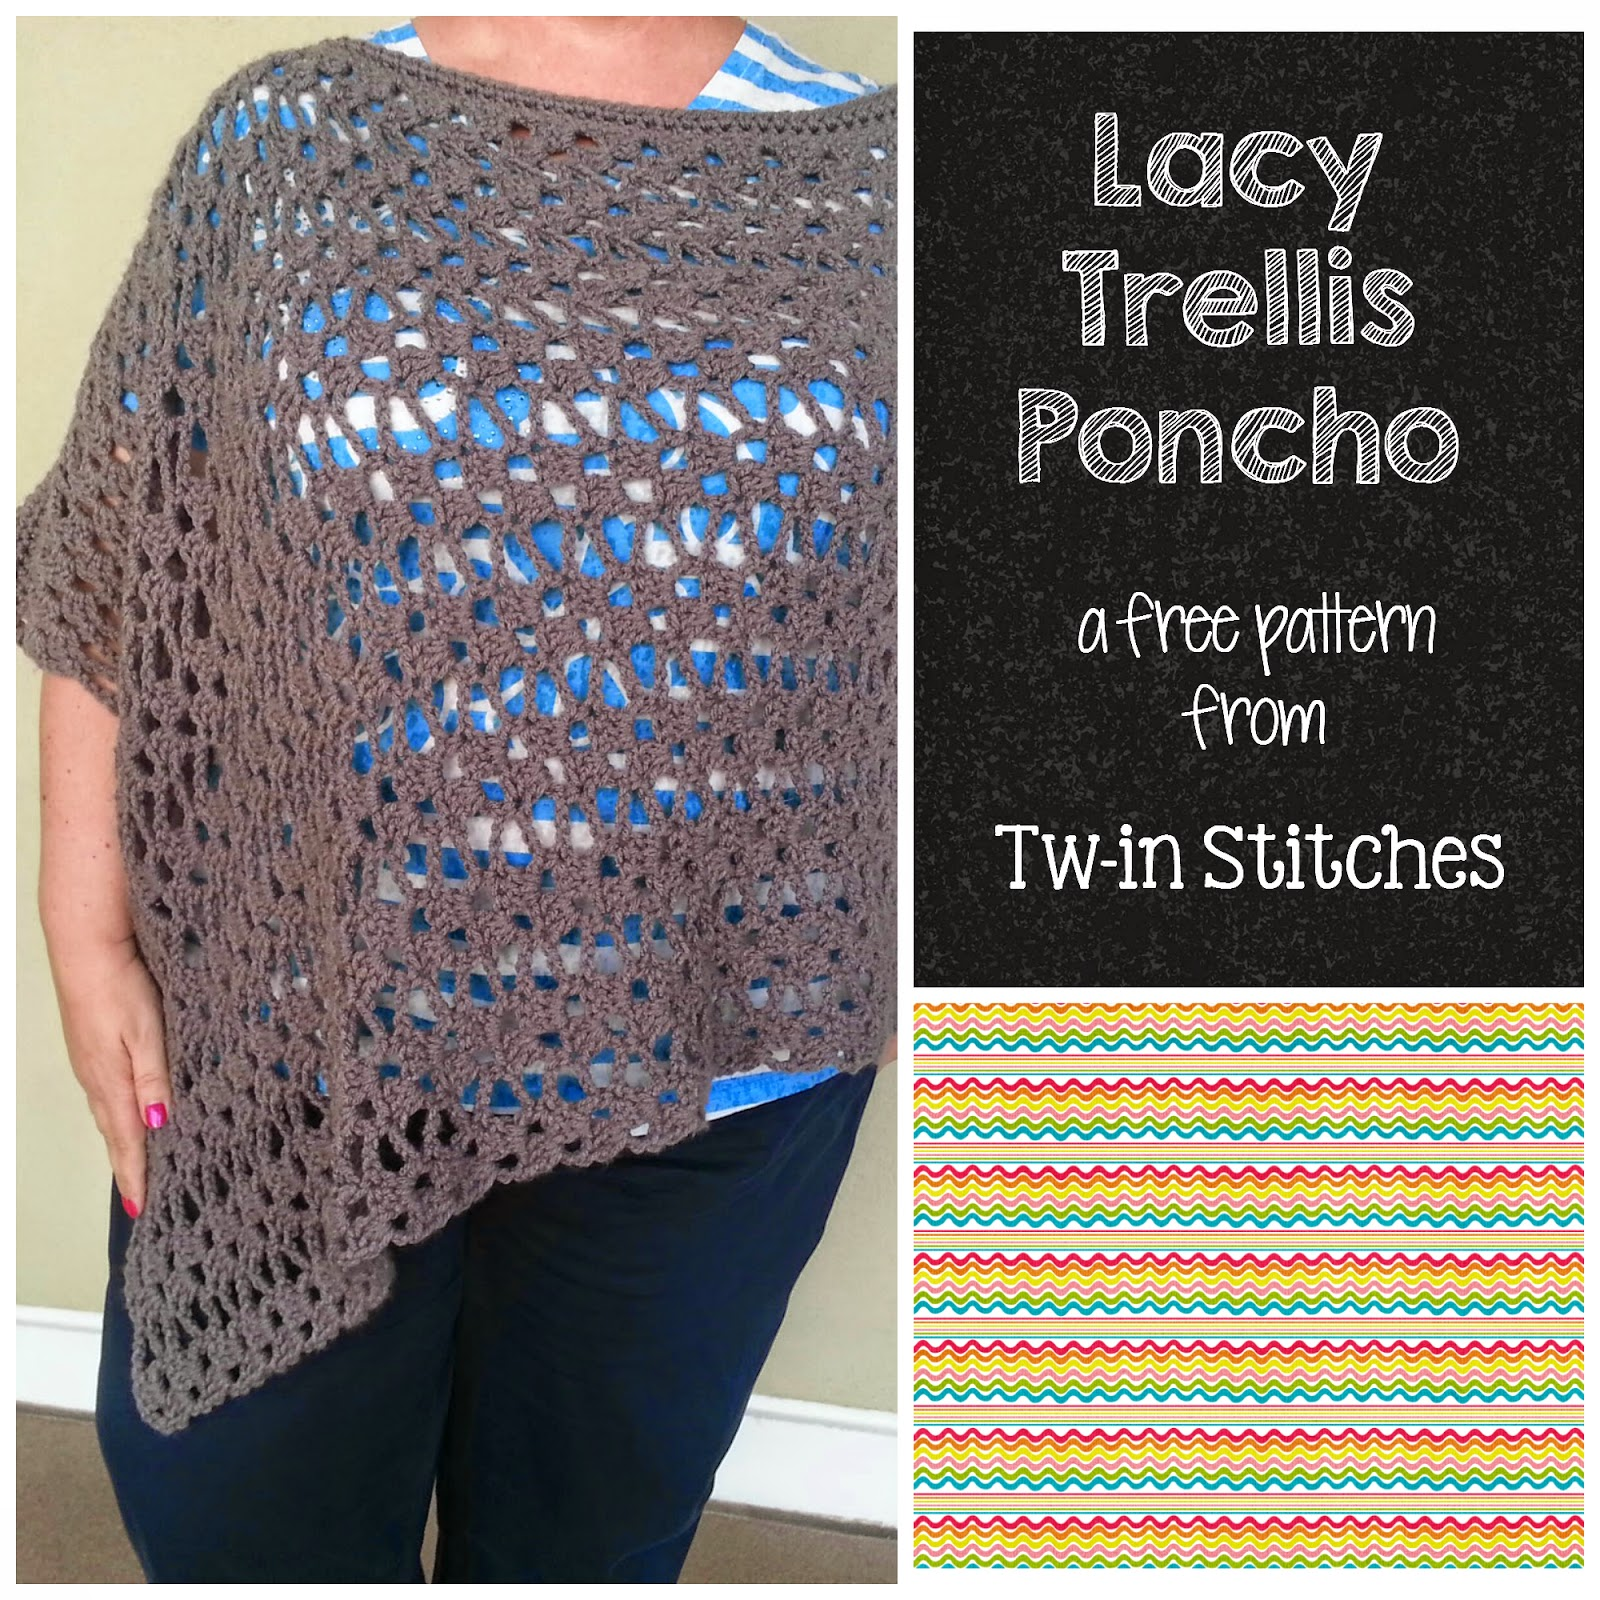 http://twinstitches.blogspot.com/2014/03/lacey-trellis-poncho-version-1.html